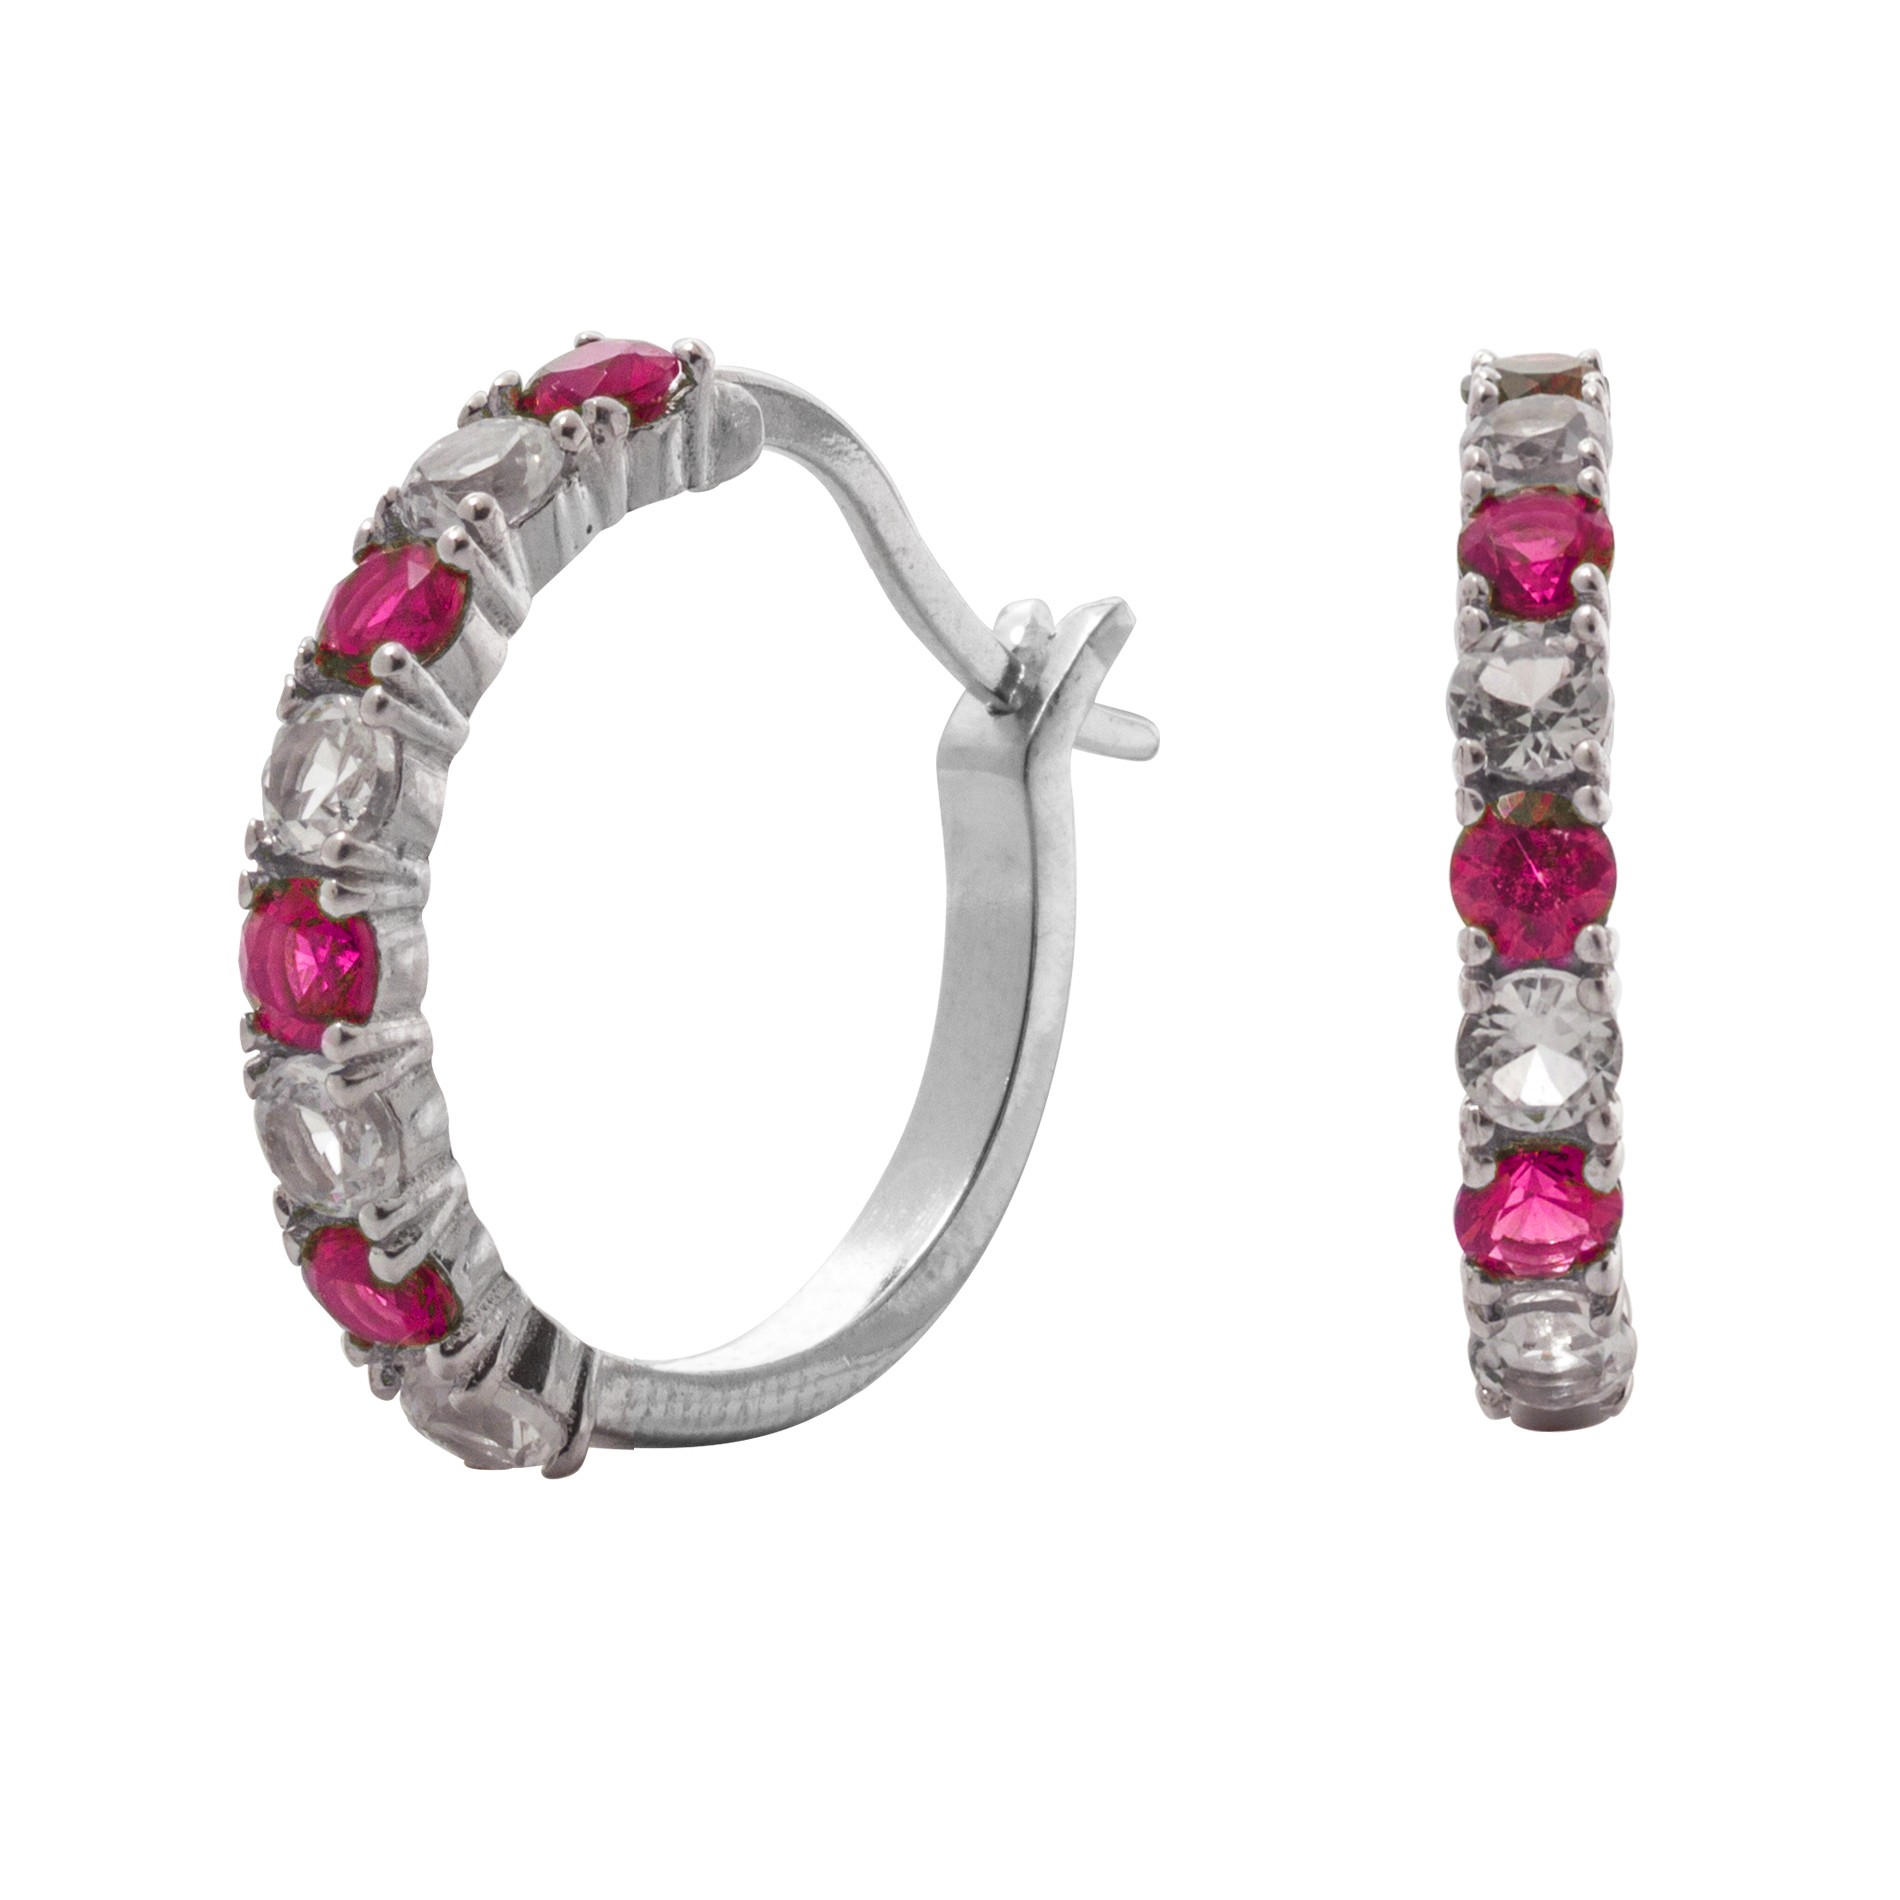 Permanent Hoop Earrings Jewelry